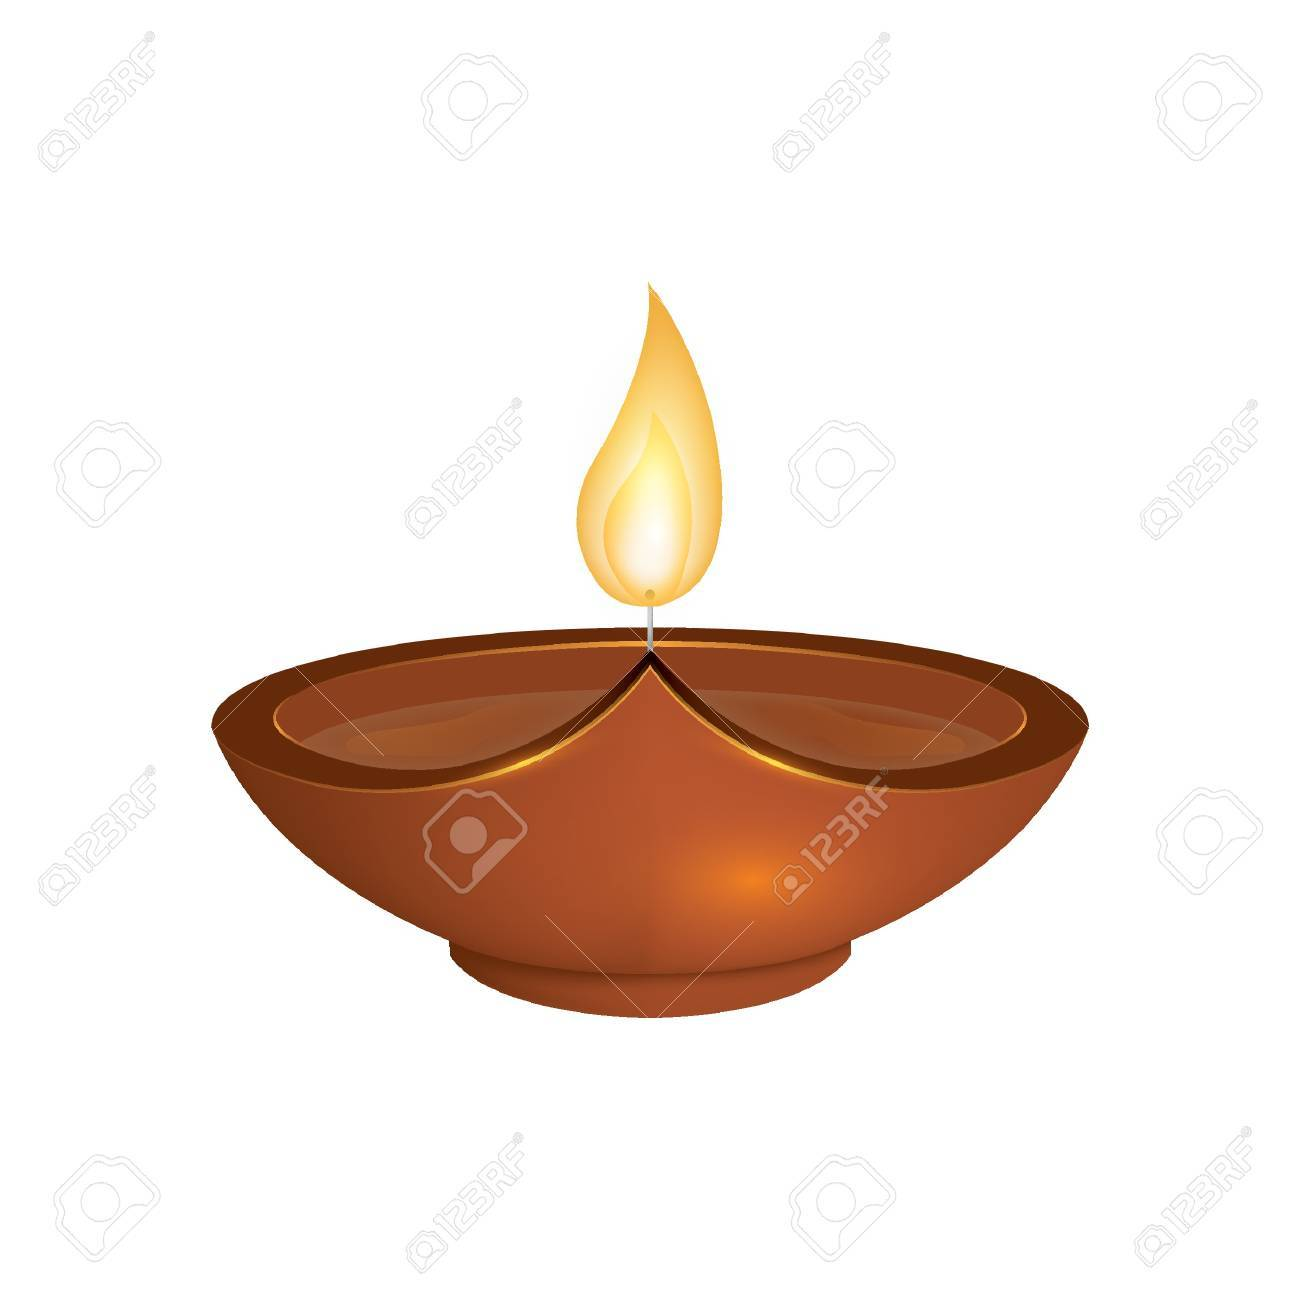 Diwali Lamp. Royalty Free Cliparts, Vectors, And Stock Illustration ... for diwali lamps clipart  56bof